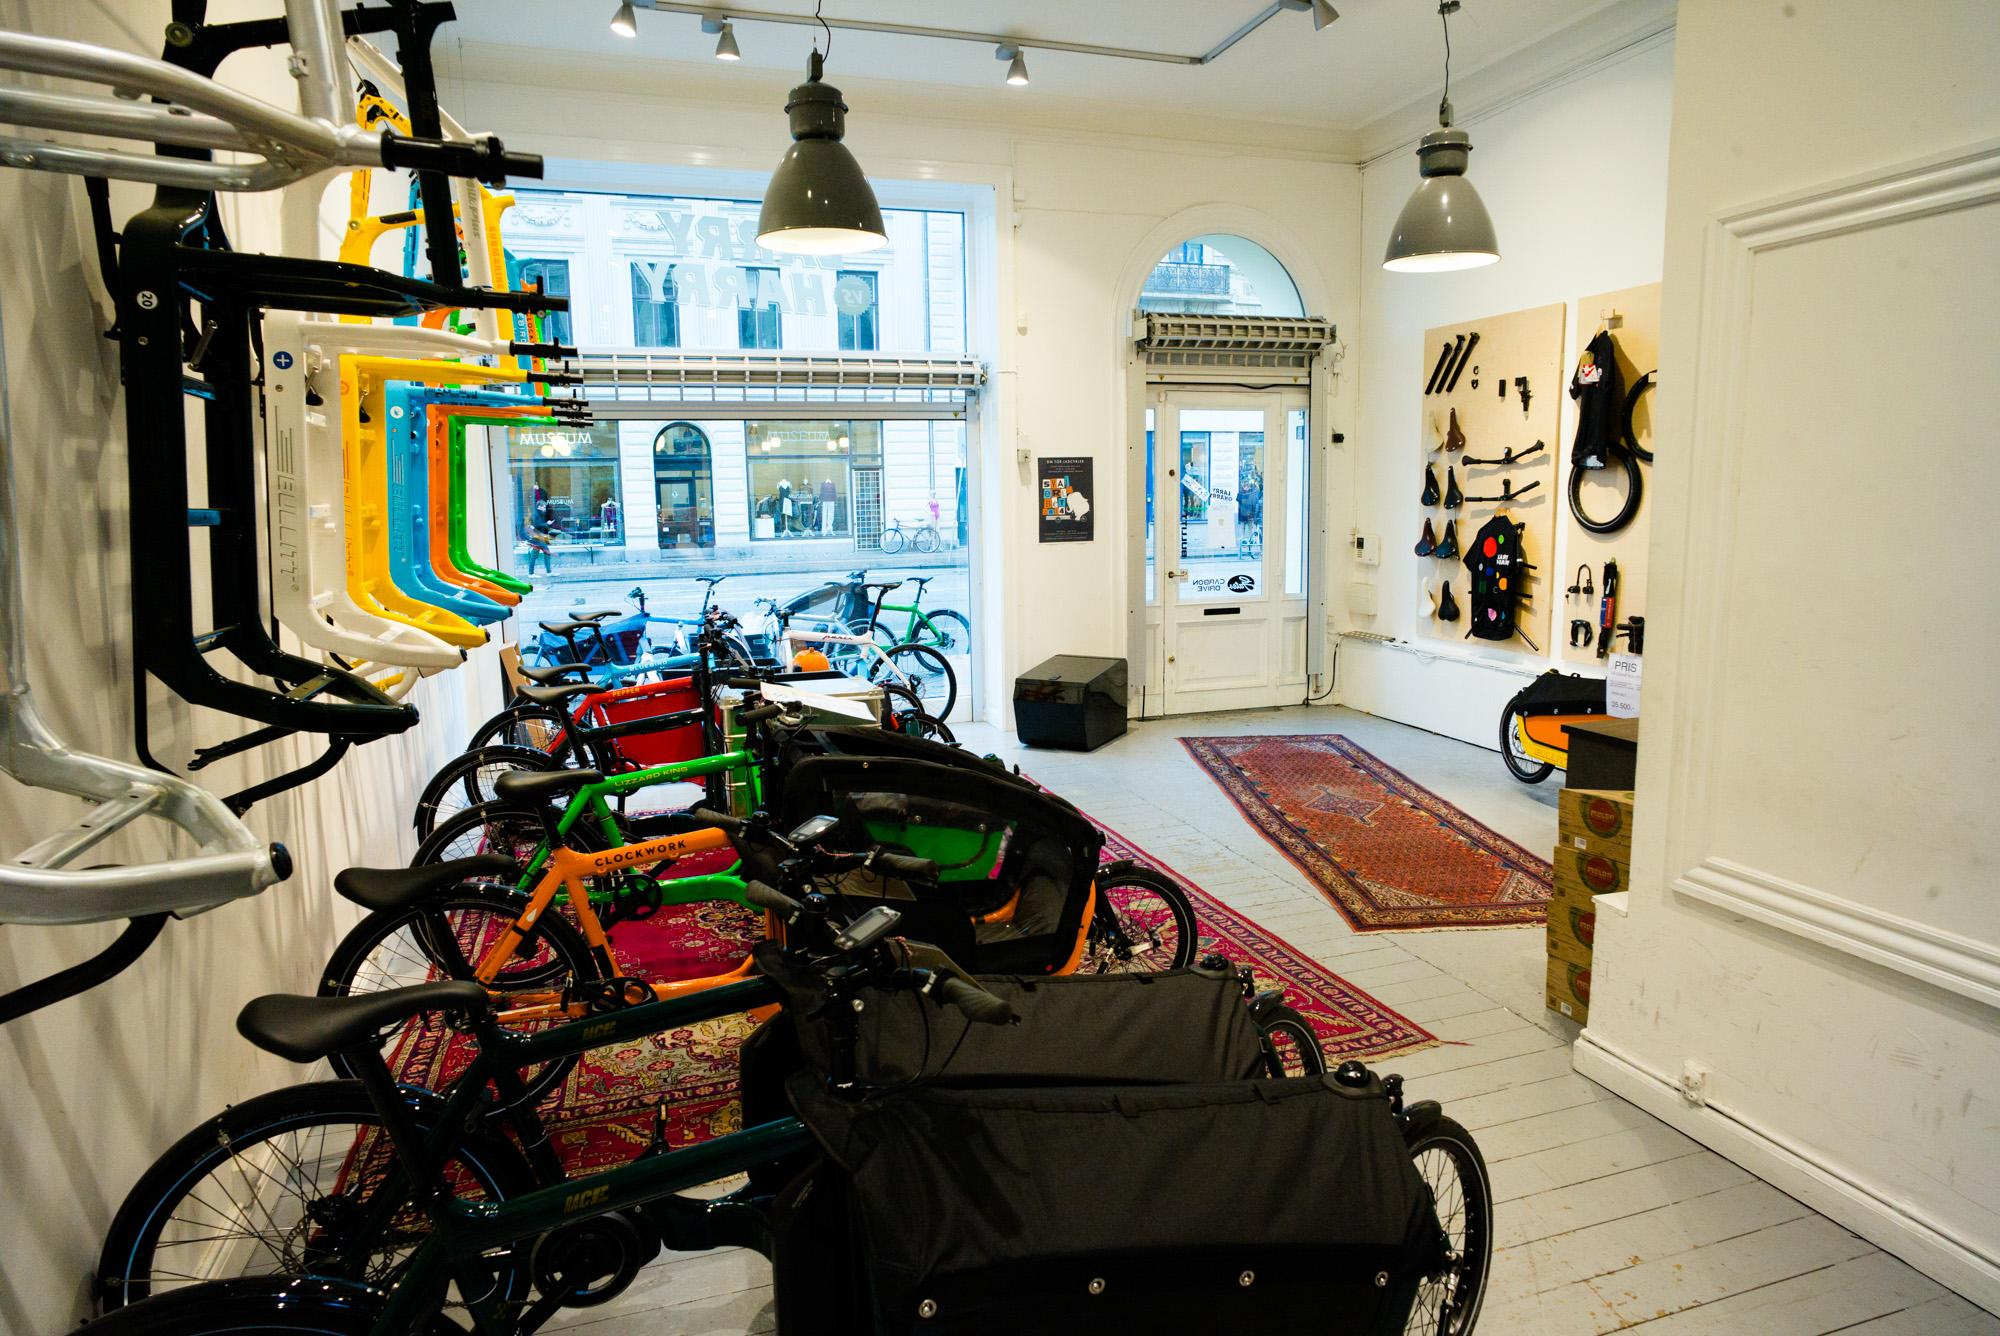 Inside the shop they have several complete bikes and frames on d